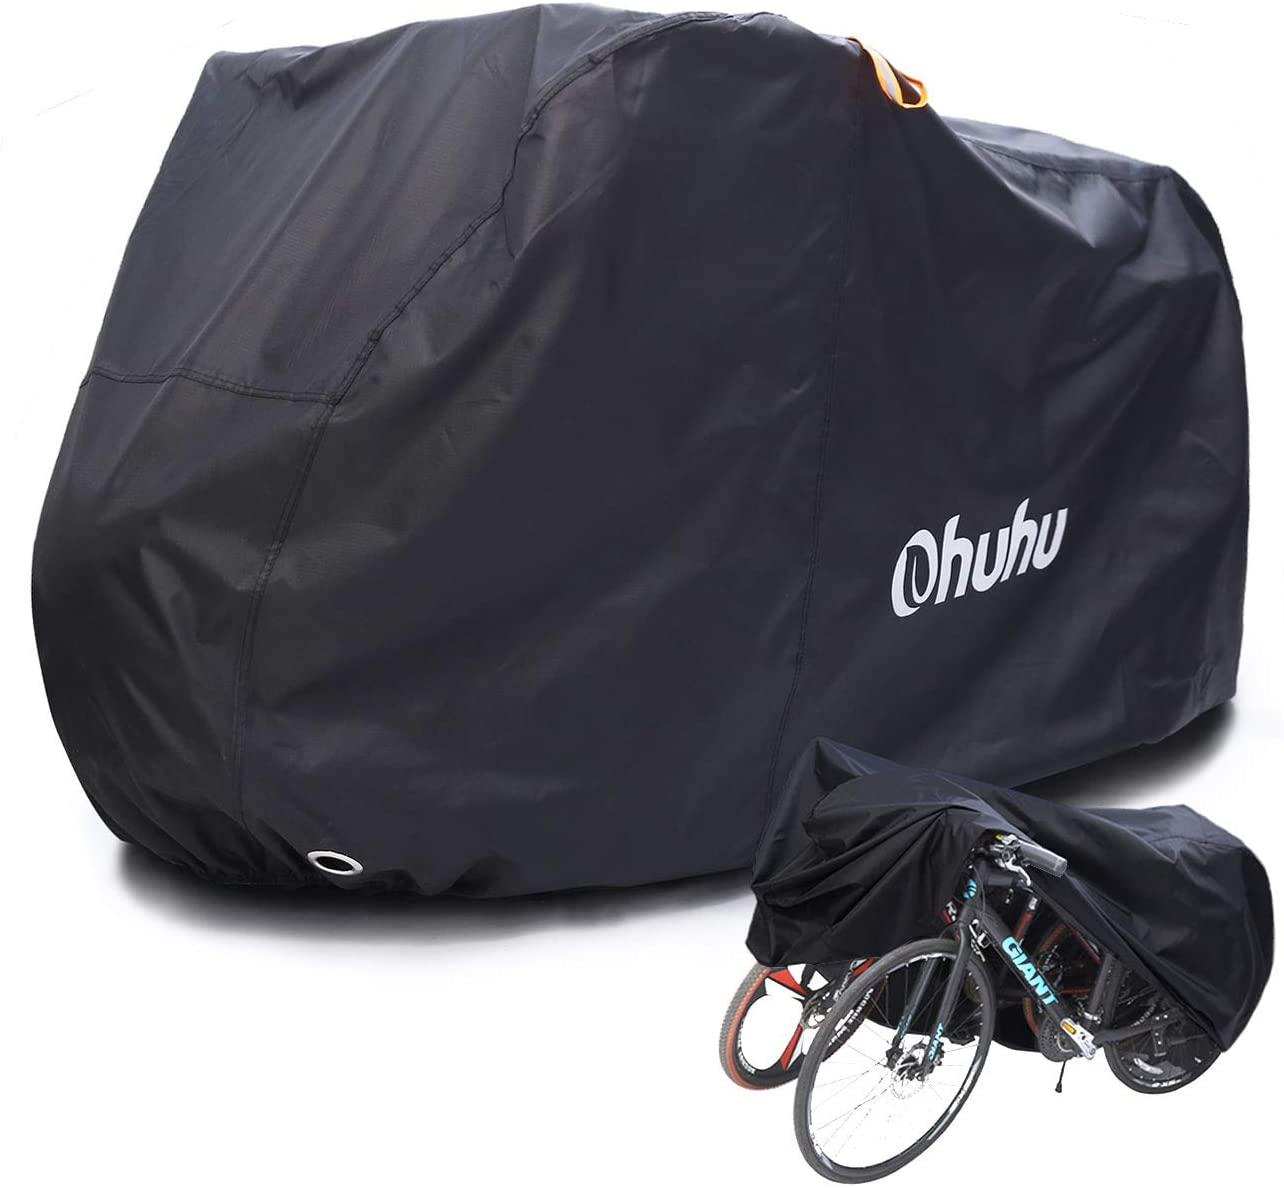 Ohuhu Bike Cover Waterproof XL/XXL for 2 or 3 Bikes Outdoor Storage Windproof Bicycle Covers for Mountain Bike Road Bike